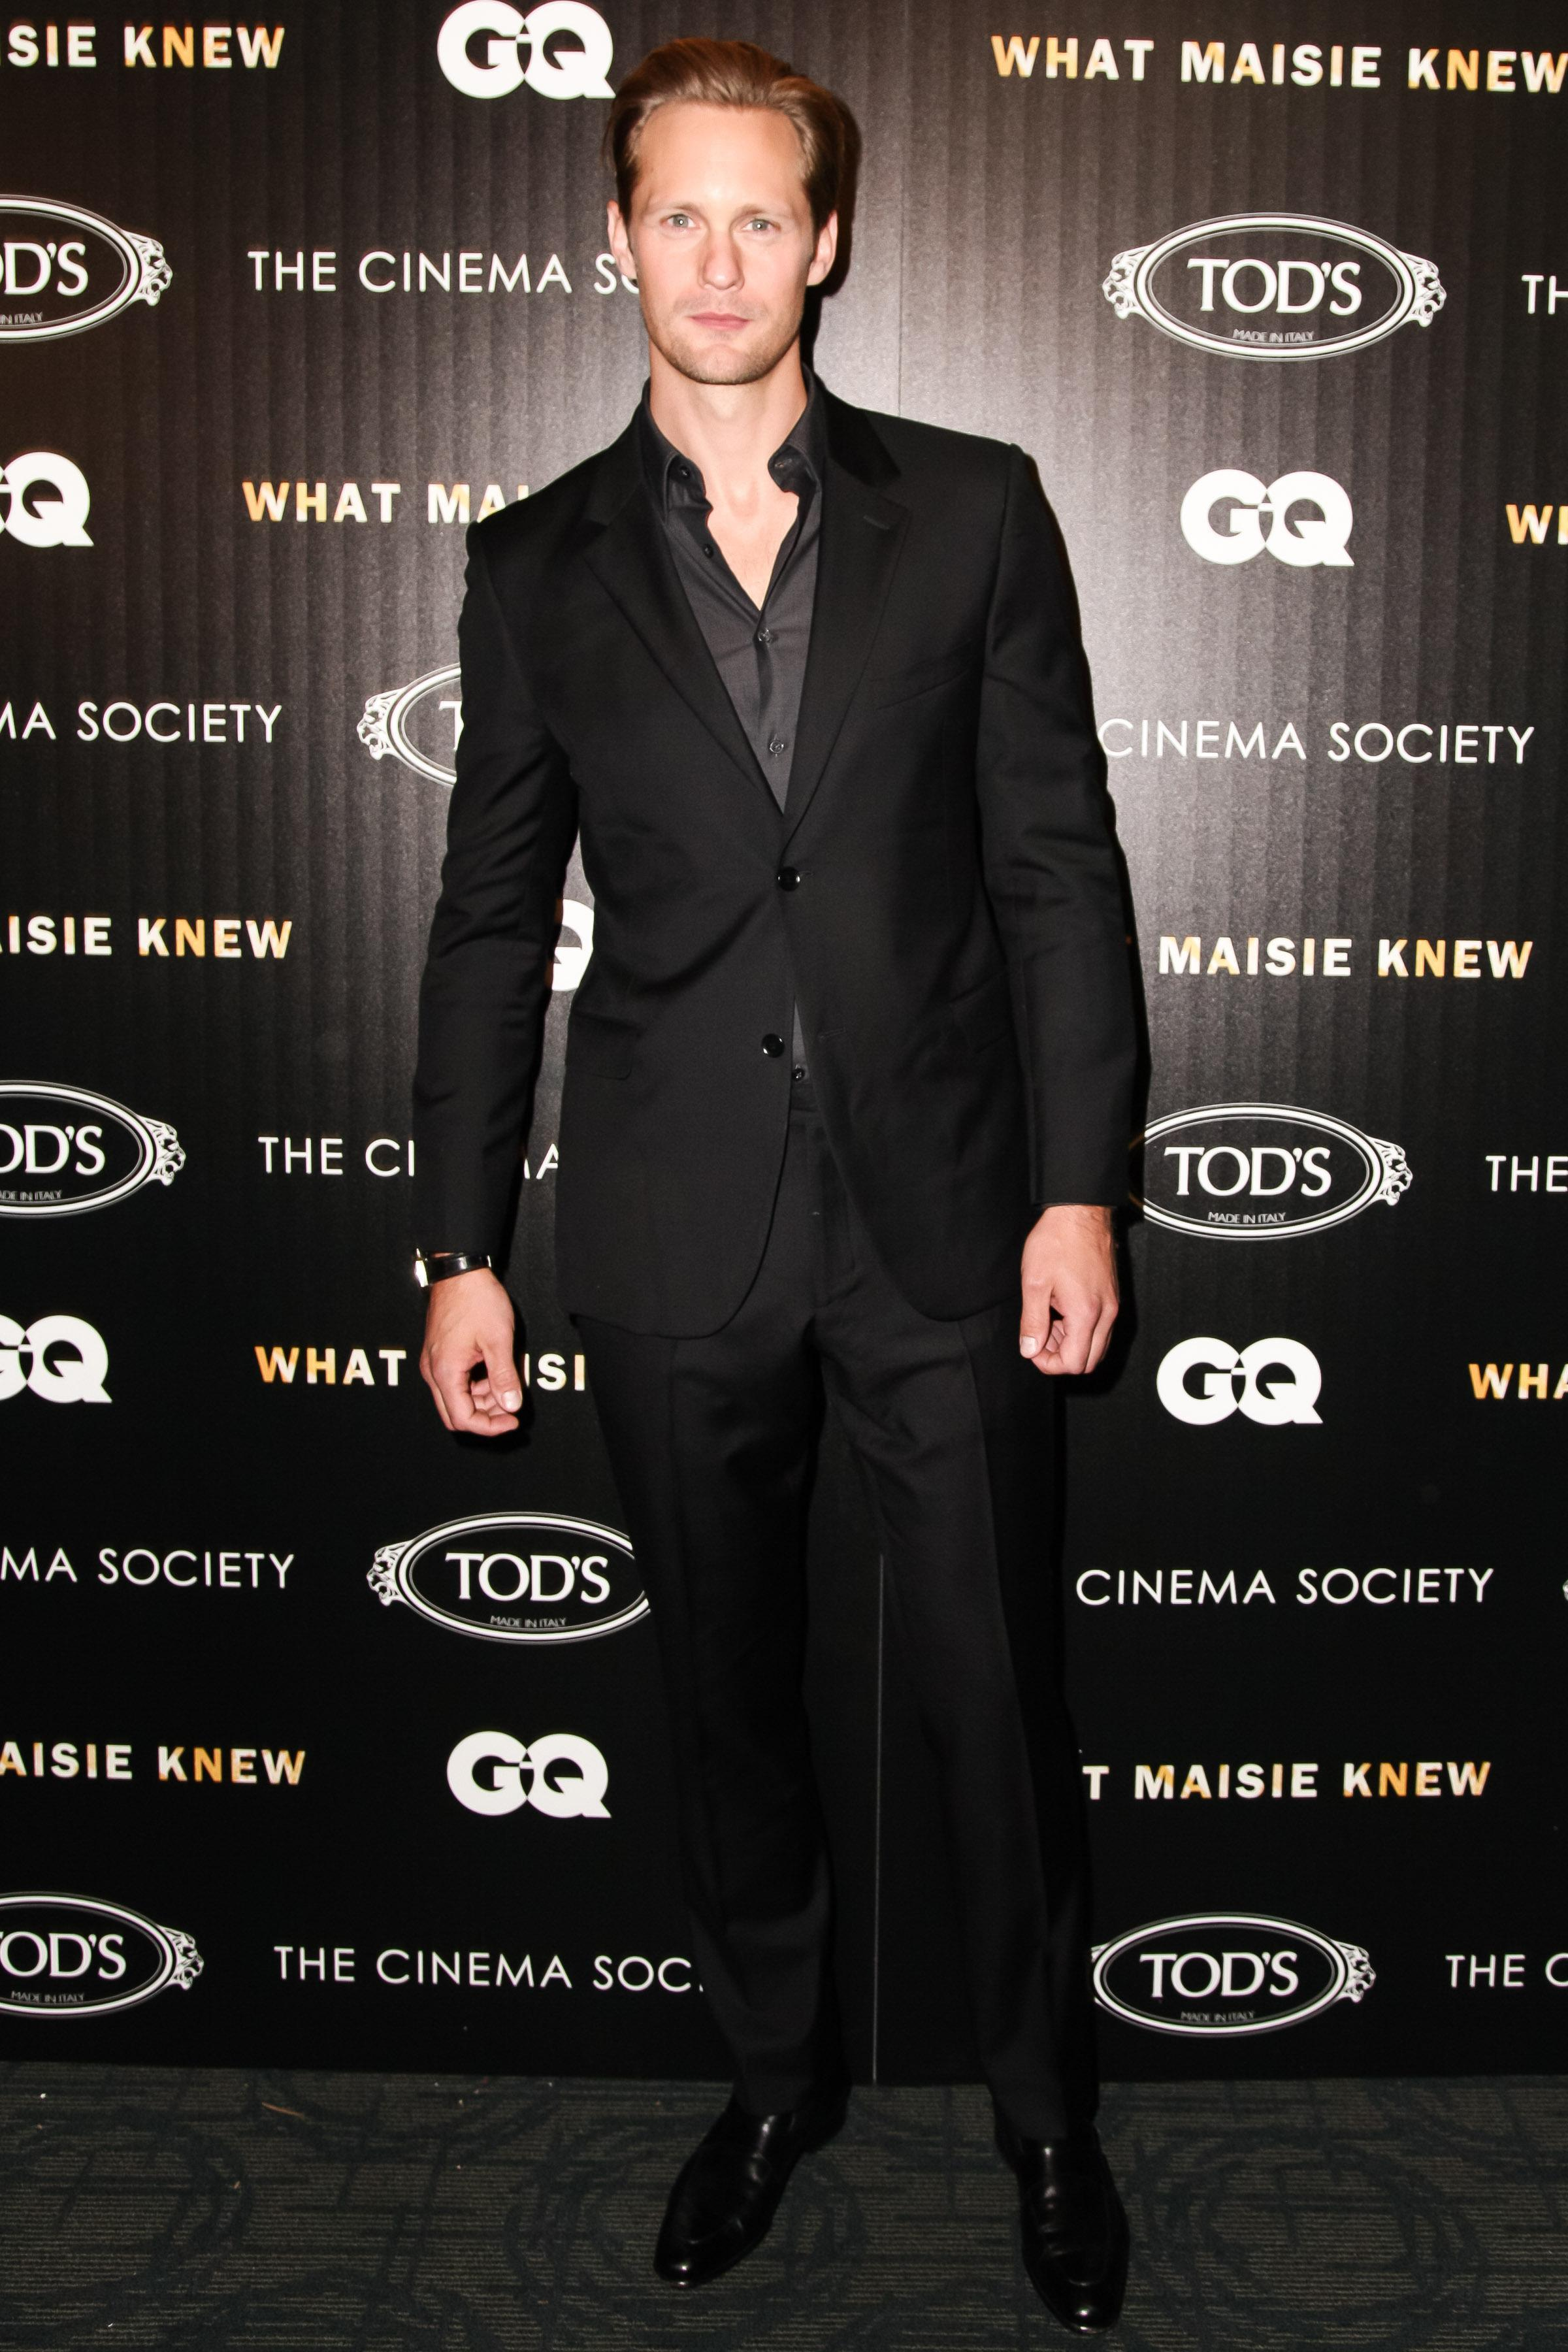 THE CINEMA SOCIETY with TOD'S & GQ host a screening of Millennium Entertainment's